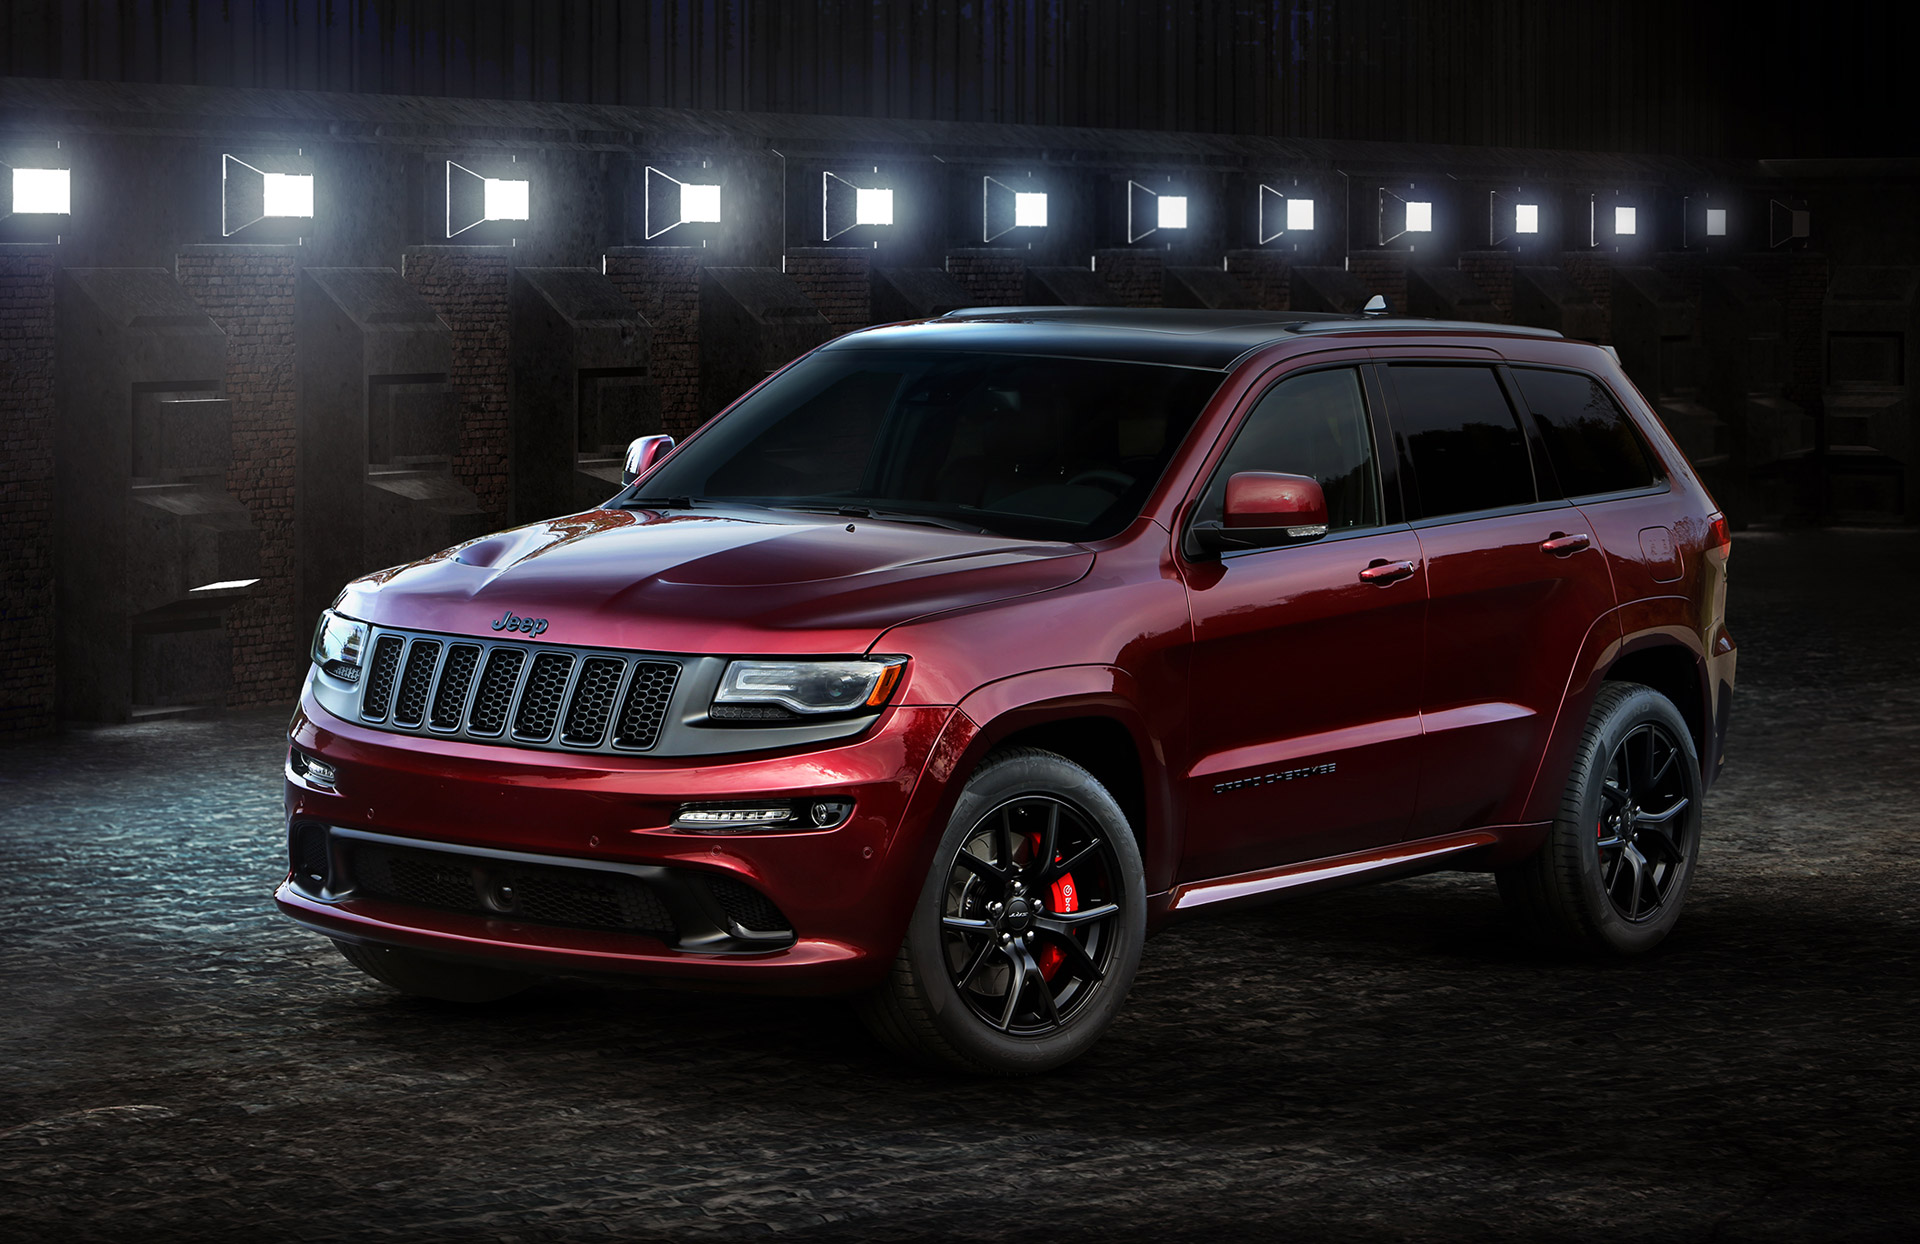 jeep grand cherokee picture - photo #31